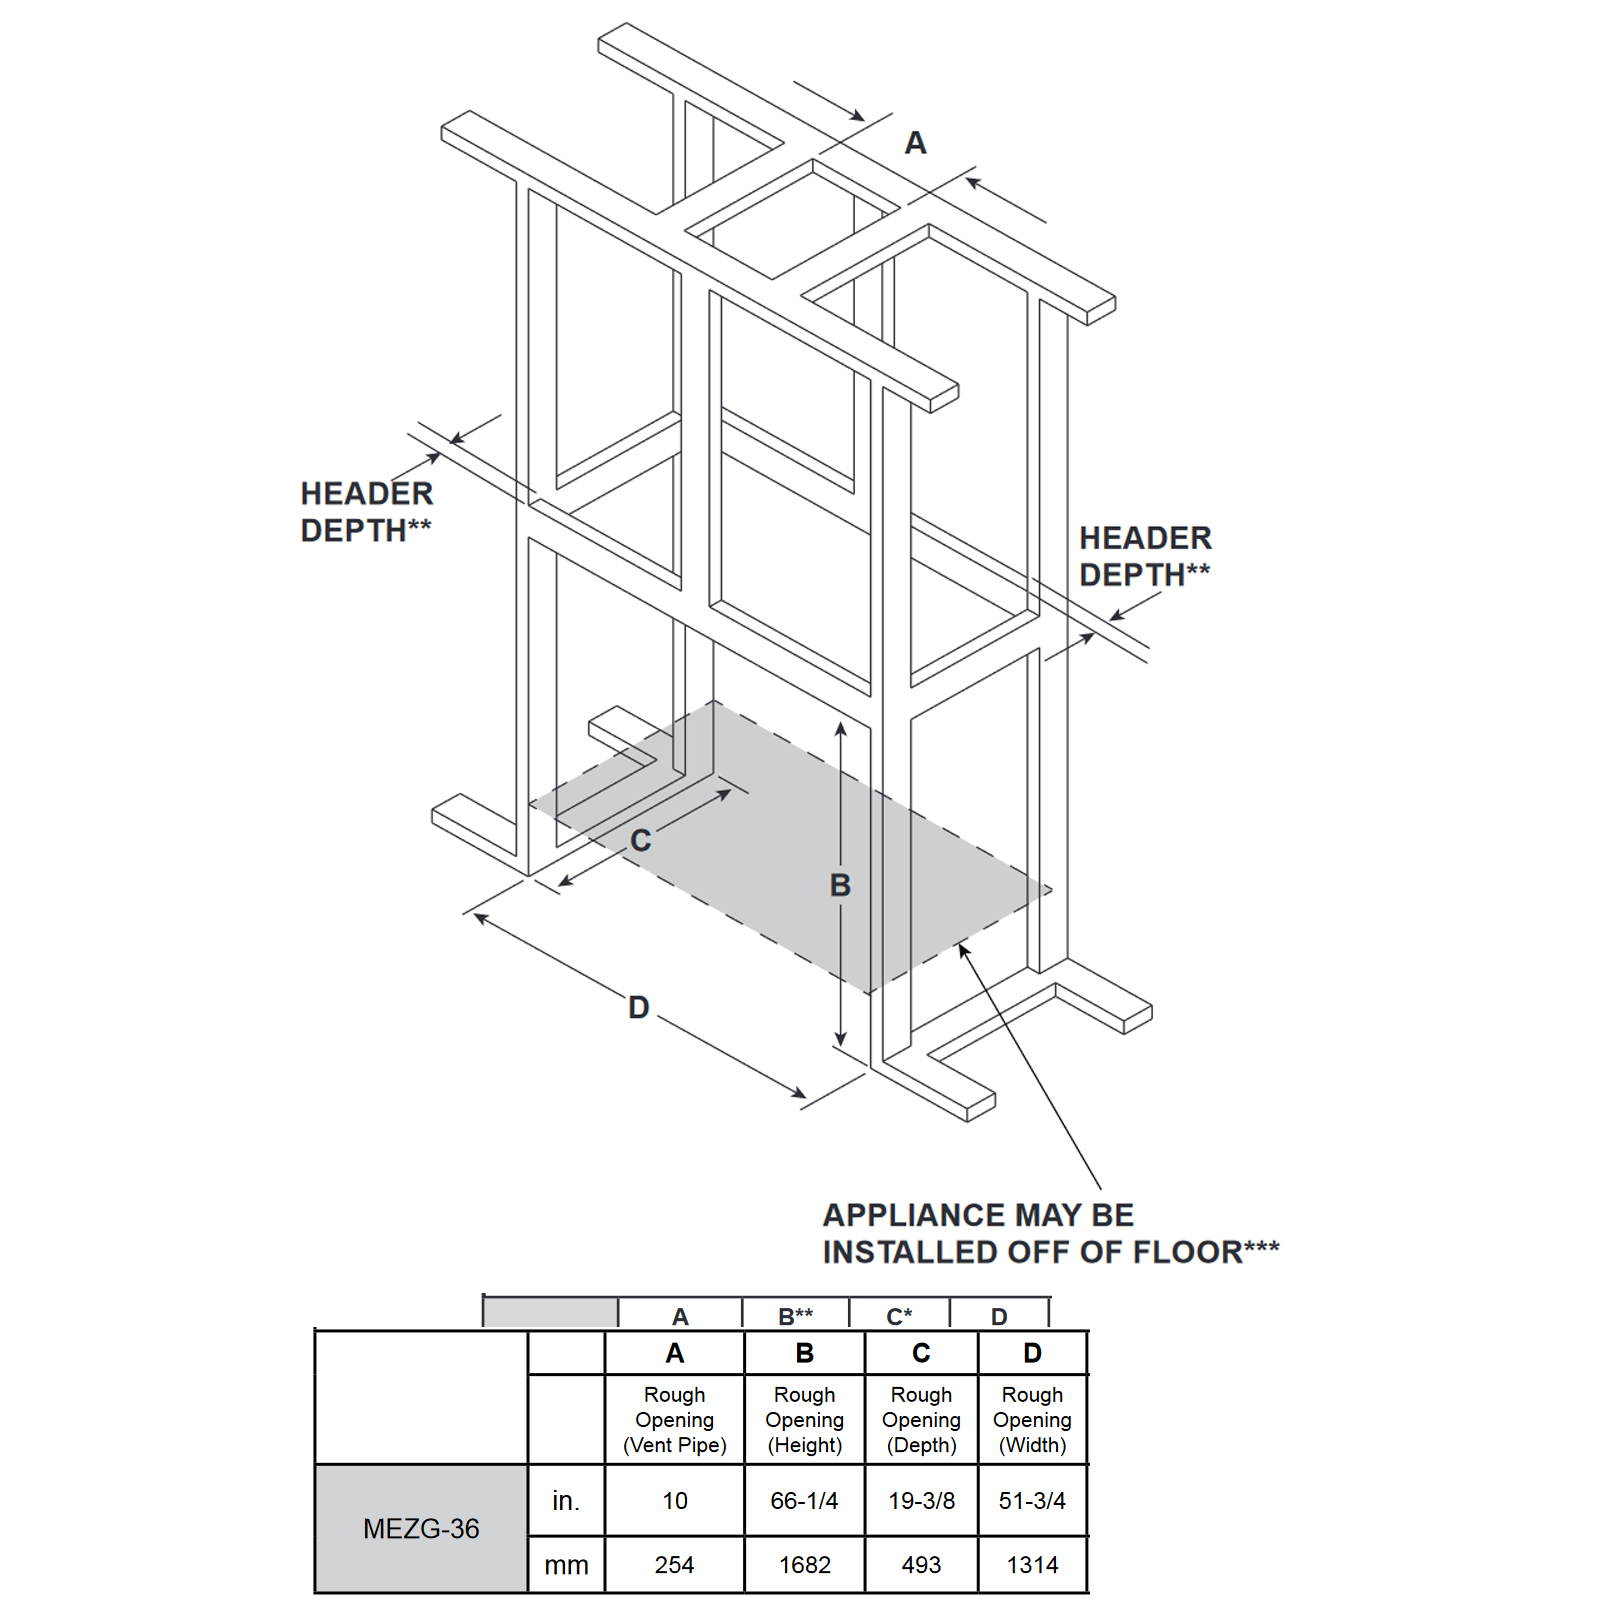 ODMEZG-36 Technical Drawing 2